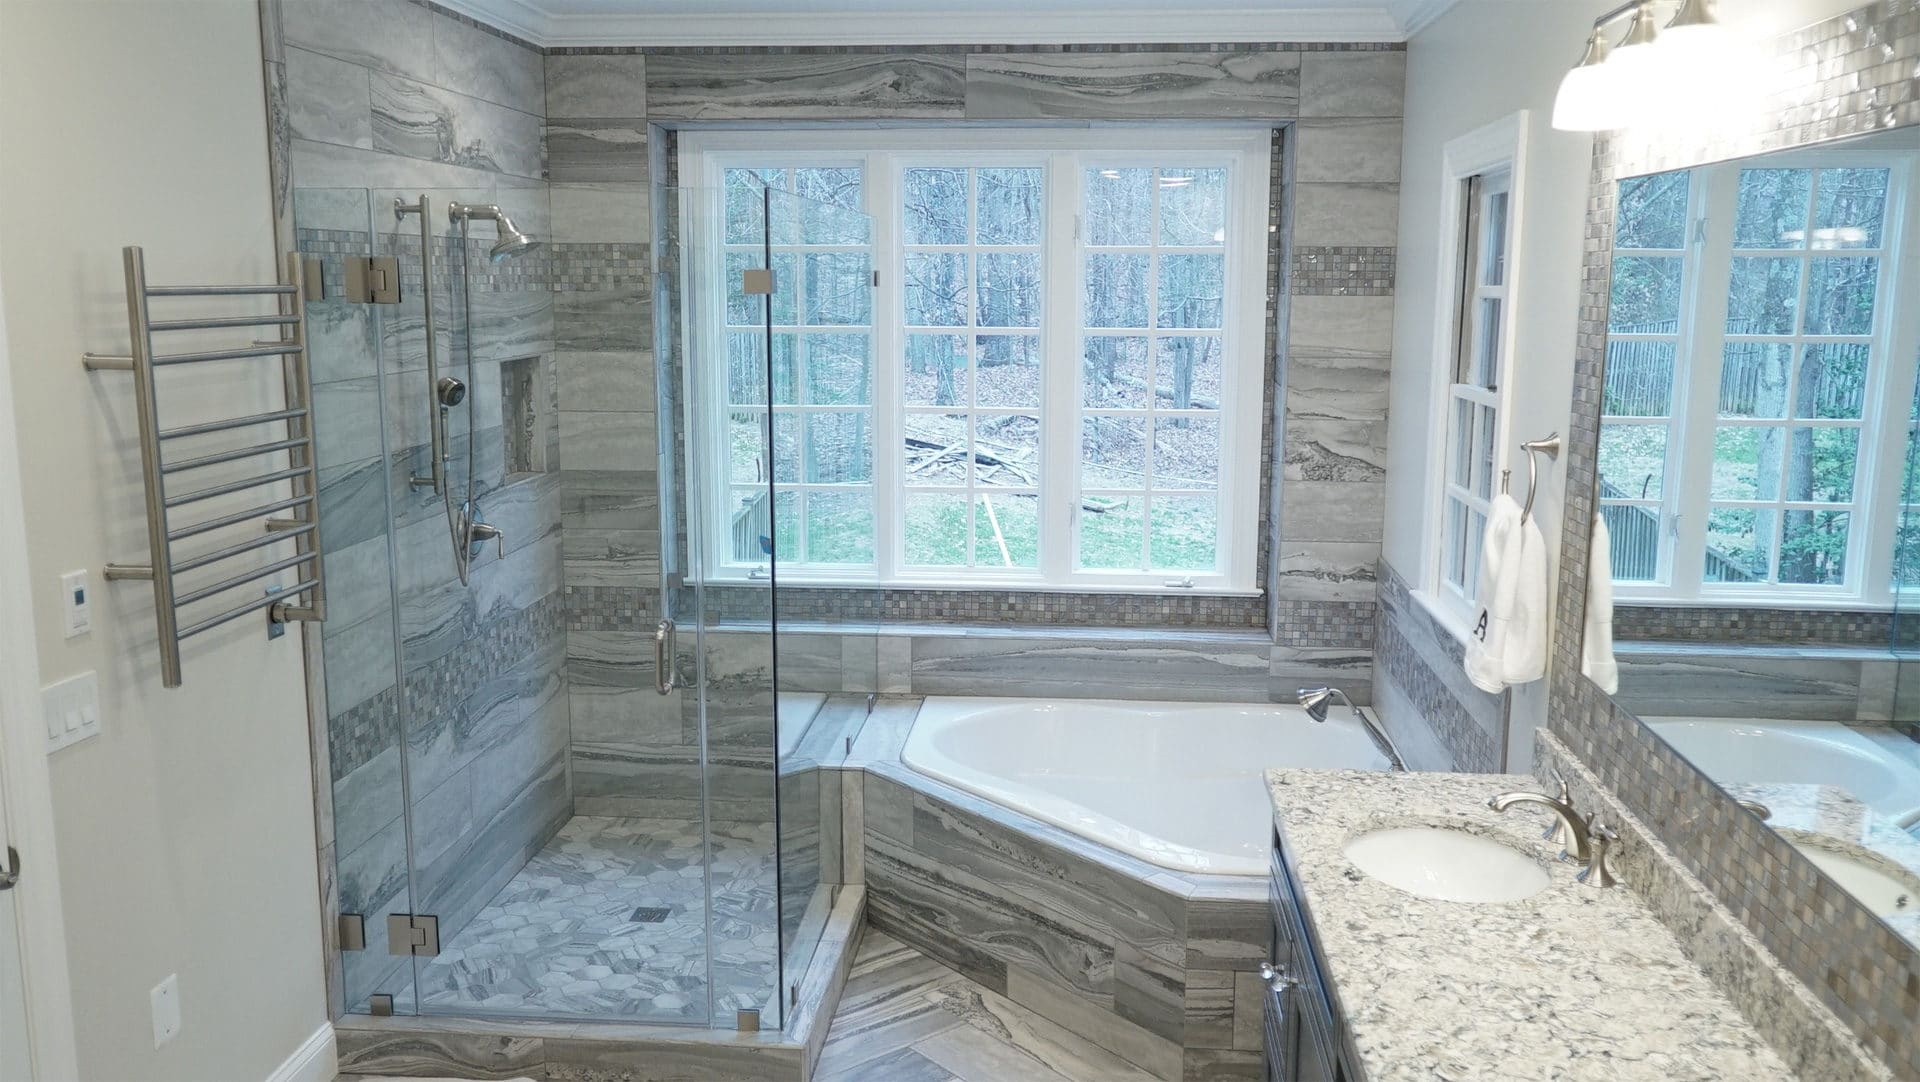 Designing And Renovating Master Suite Bathroom With Right Vanity